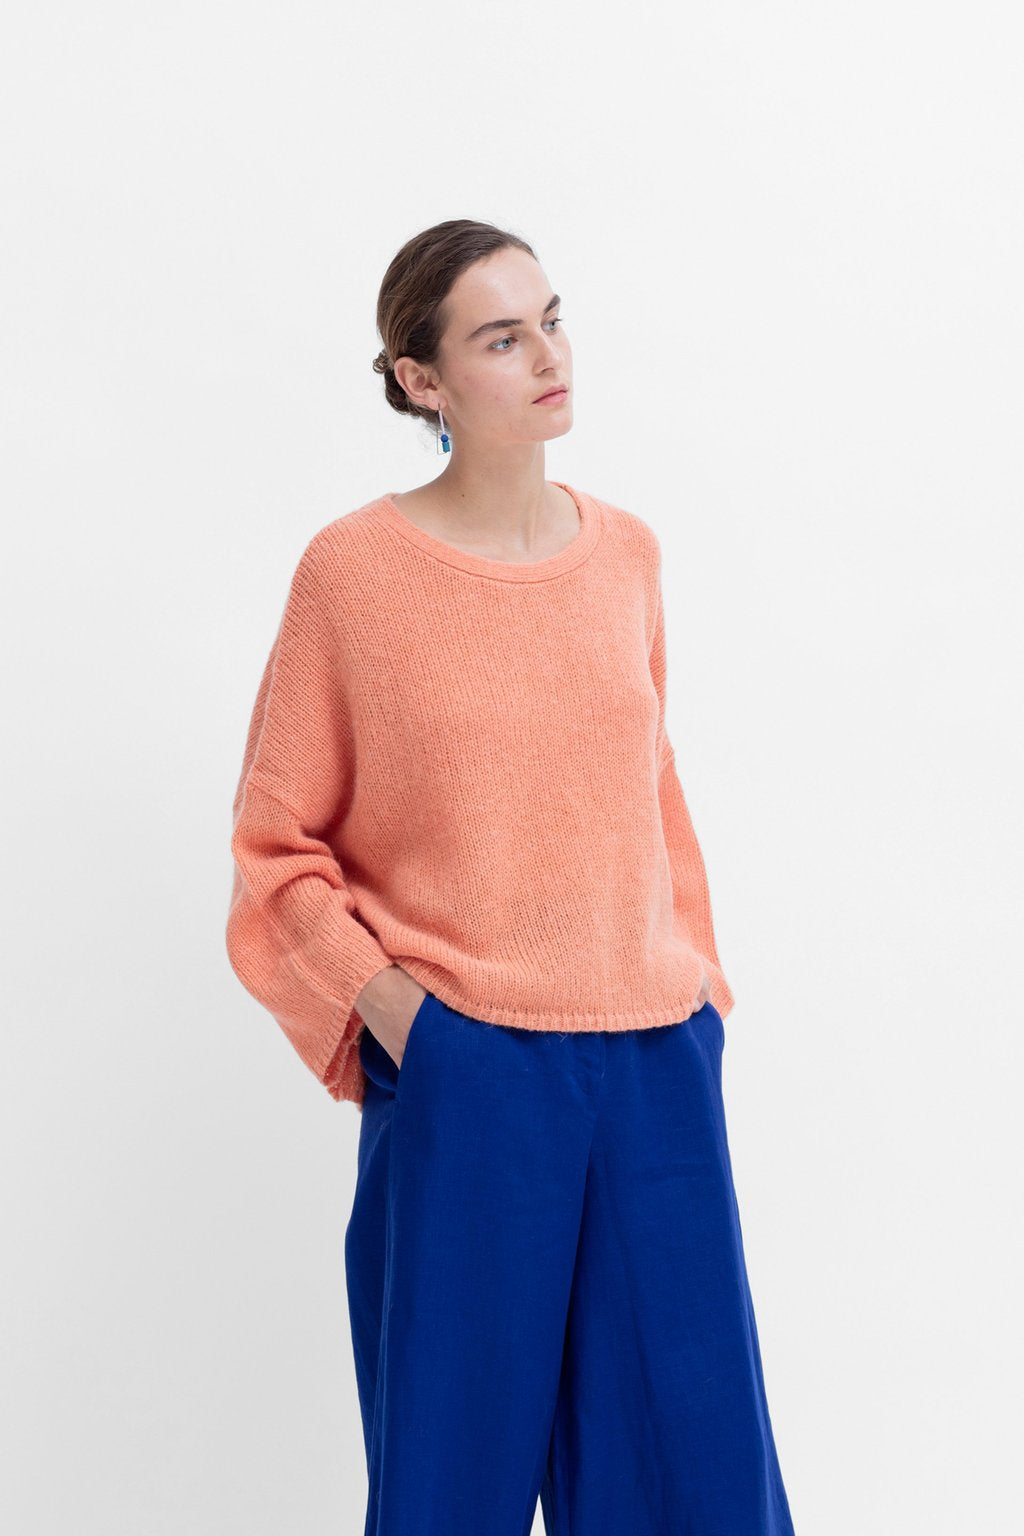 Elk Agna Sweater - Peach